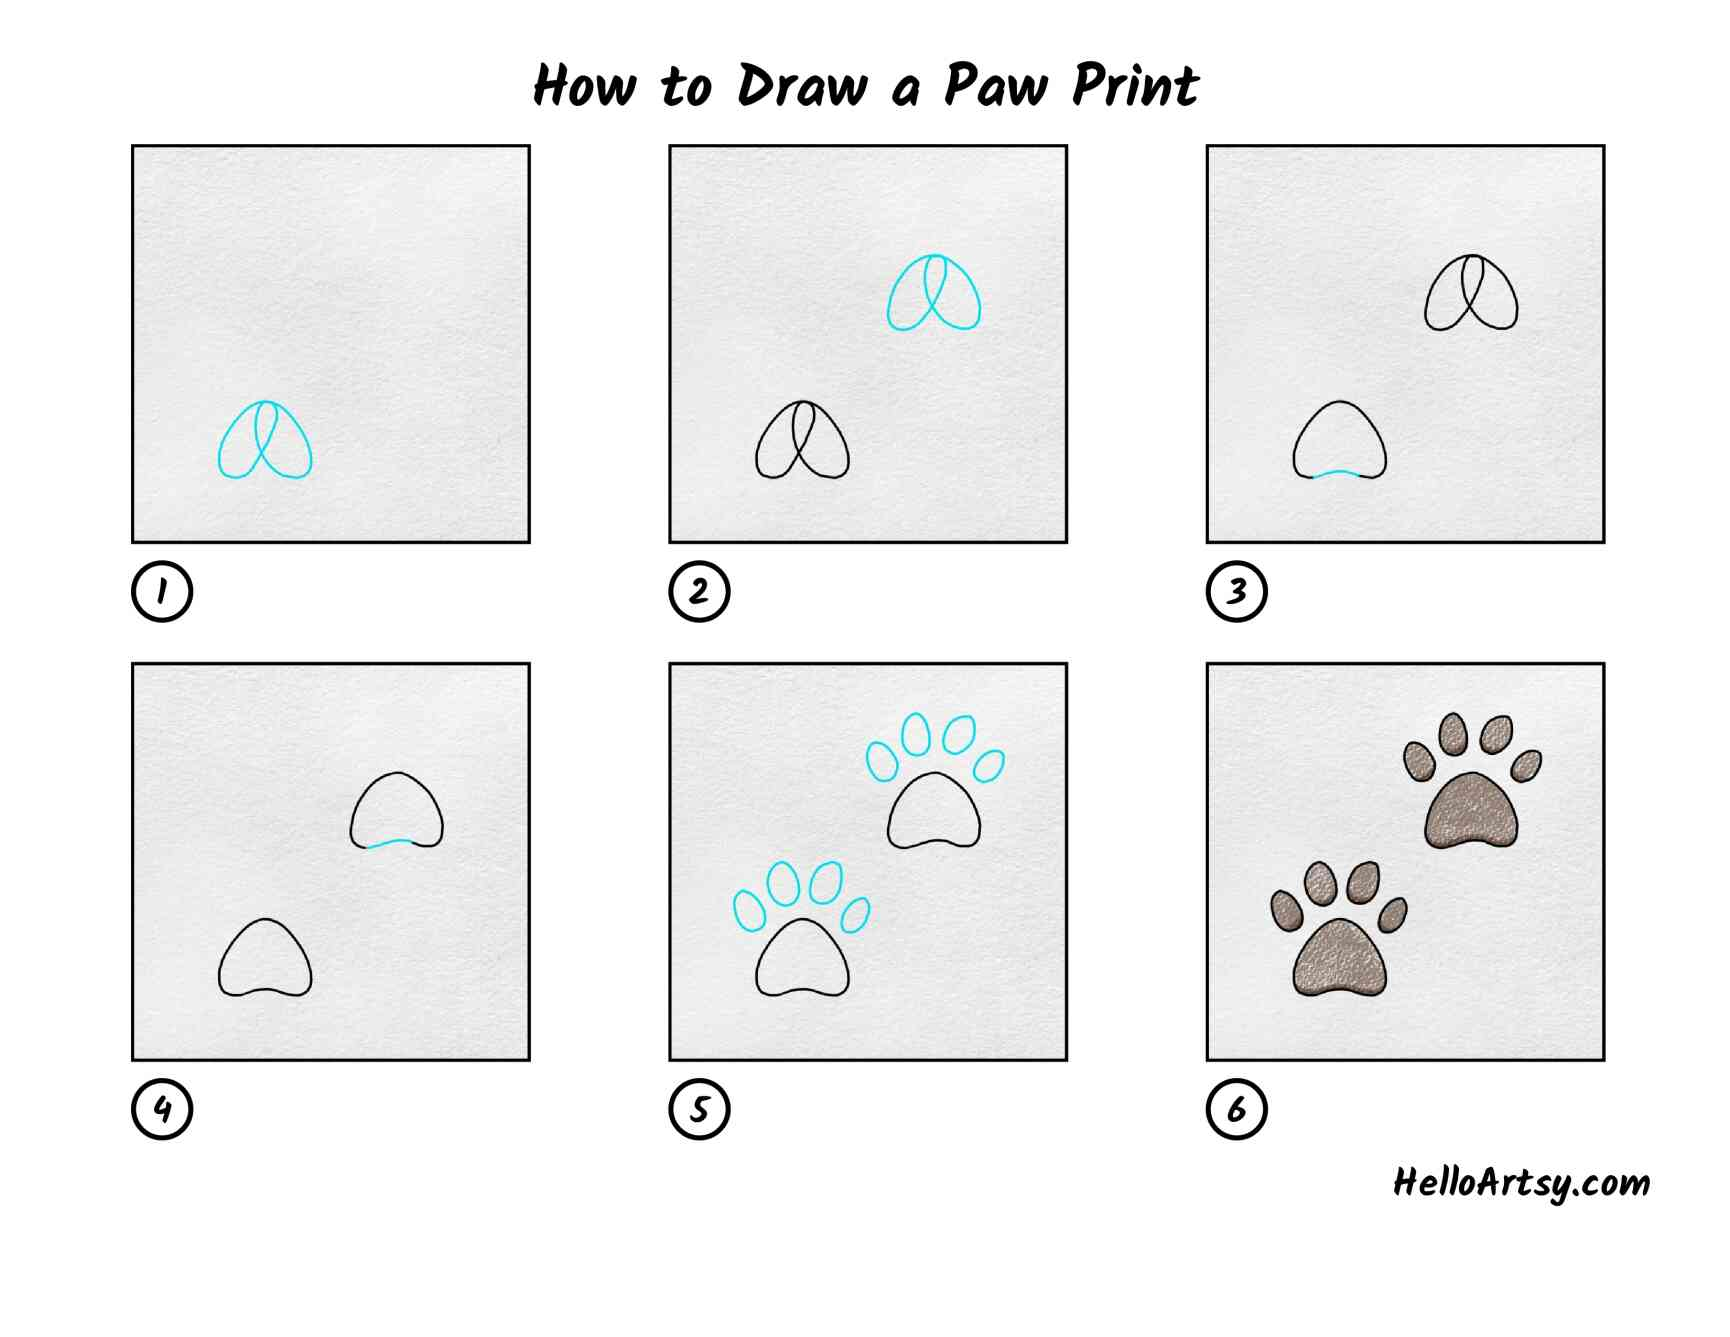 How To Draw A Paw Print: All Steps